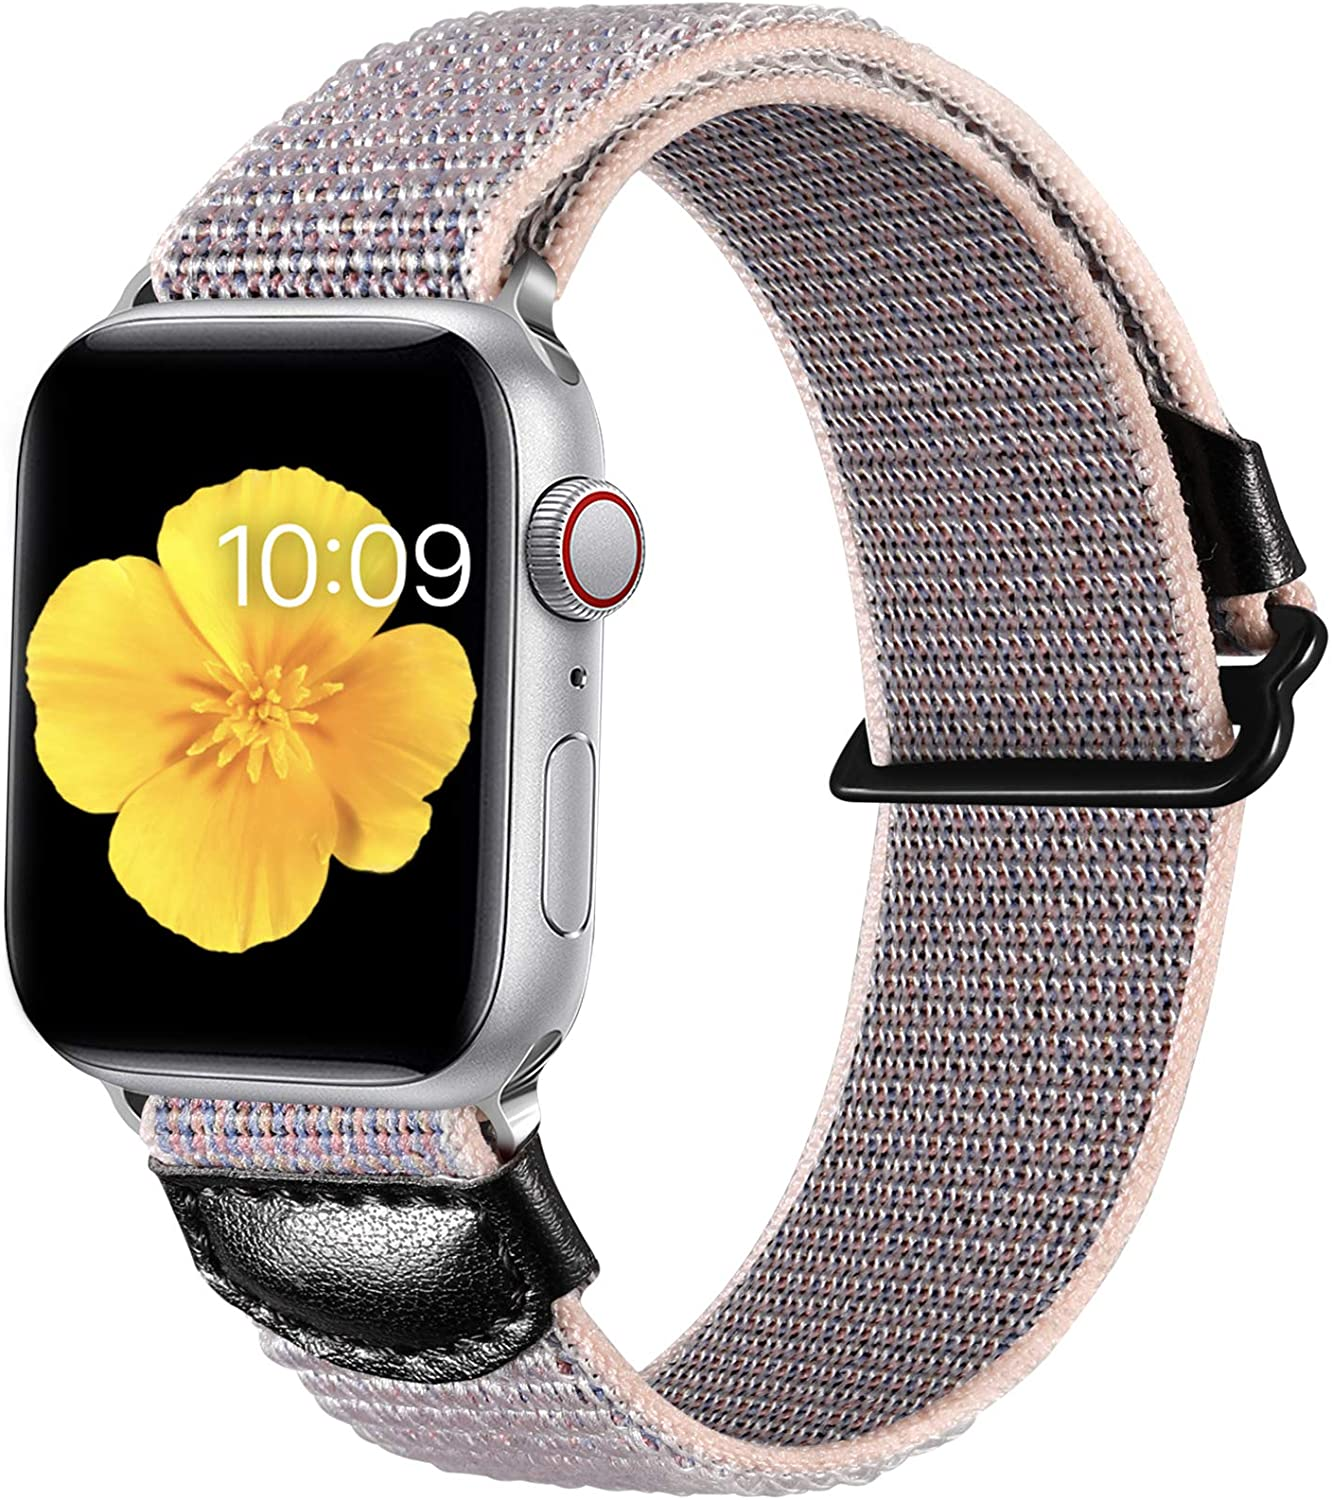 Easuny Sport Bands Compatible with Apple Watch Series 6 44mm Series 5 4/SE for Women Men, Soft weave Loop Strap Replacement for Breathable Adjustable iWatch 42mm Series 3 2 1,Sand Pink